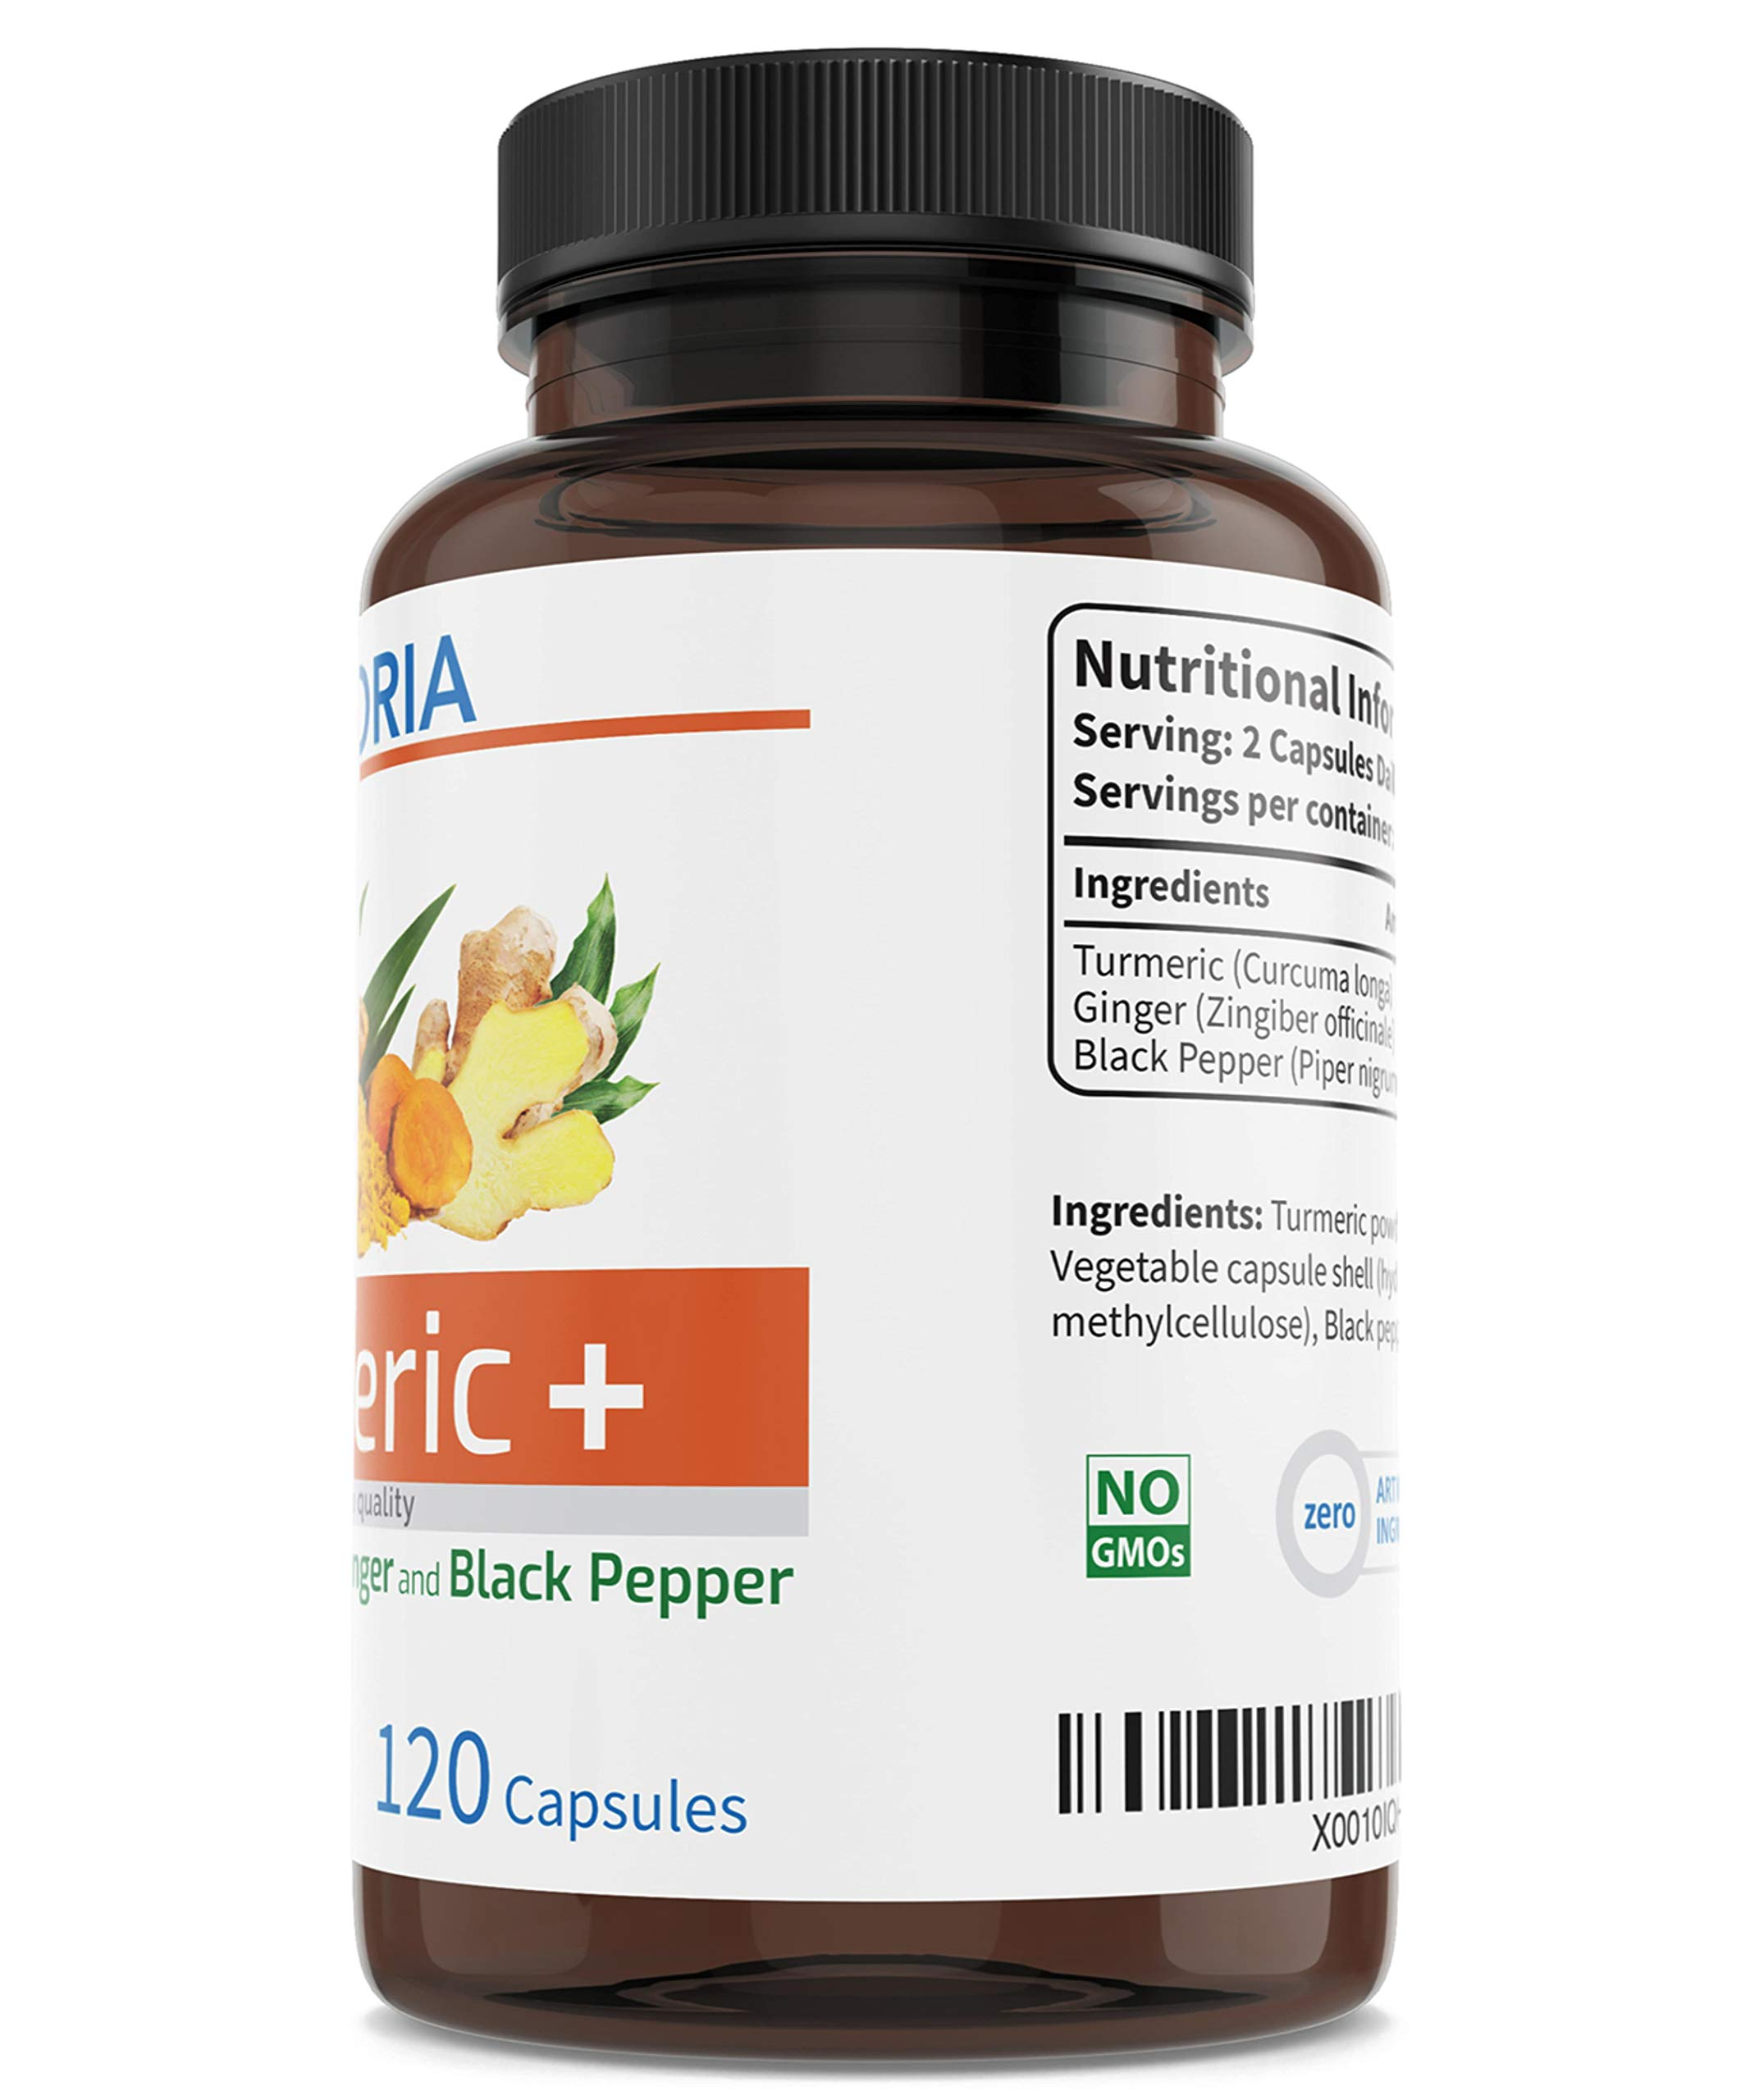 Turmeric + Ginger + Black Pepper for the maximum absorption of Curcumin - Natural Curcuma Longa Root - Antioxidant for Inflammation of the Joints - 1250mg 120 Capsules - Non-GMO Gluten-free Vegan - UK